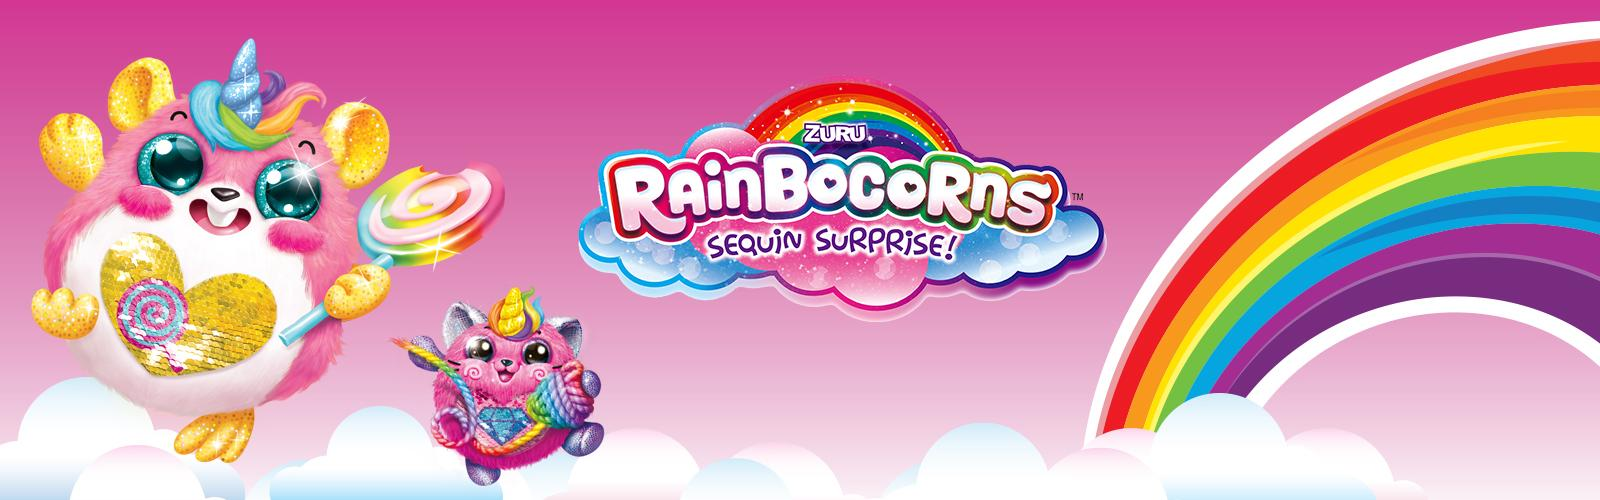 Rainbocorns